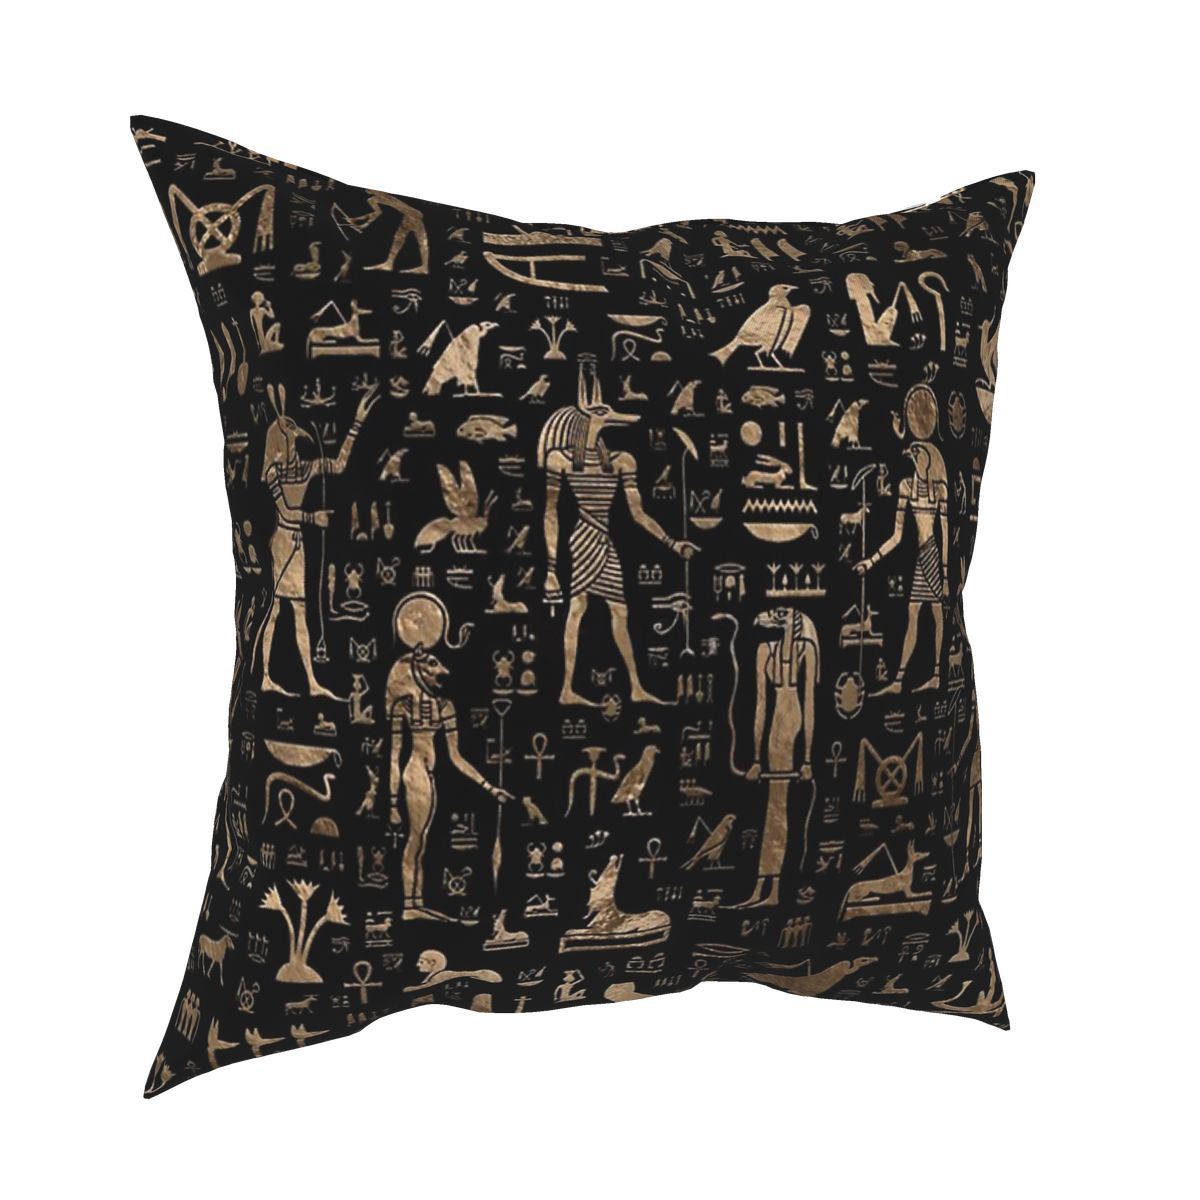 Ancient Egyptian Gods Hieroglyphs Black Pillowcover Home Decorative Eastern Language Cushions Throw Pillow for Car